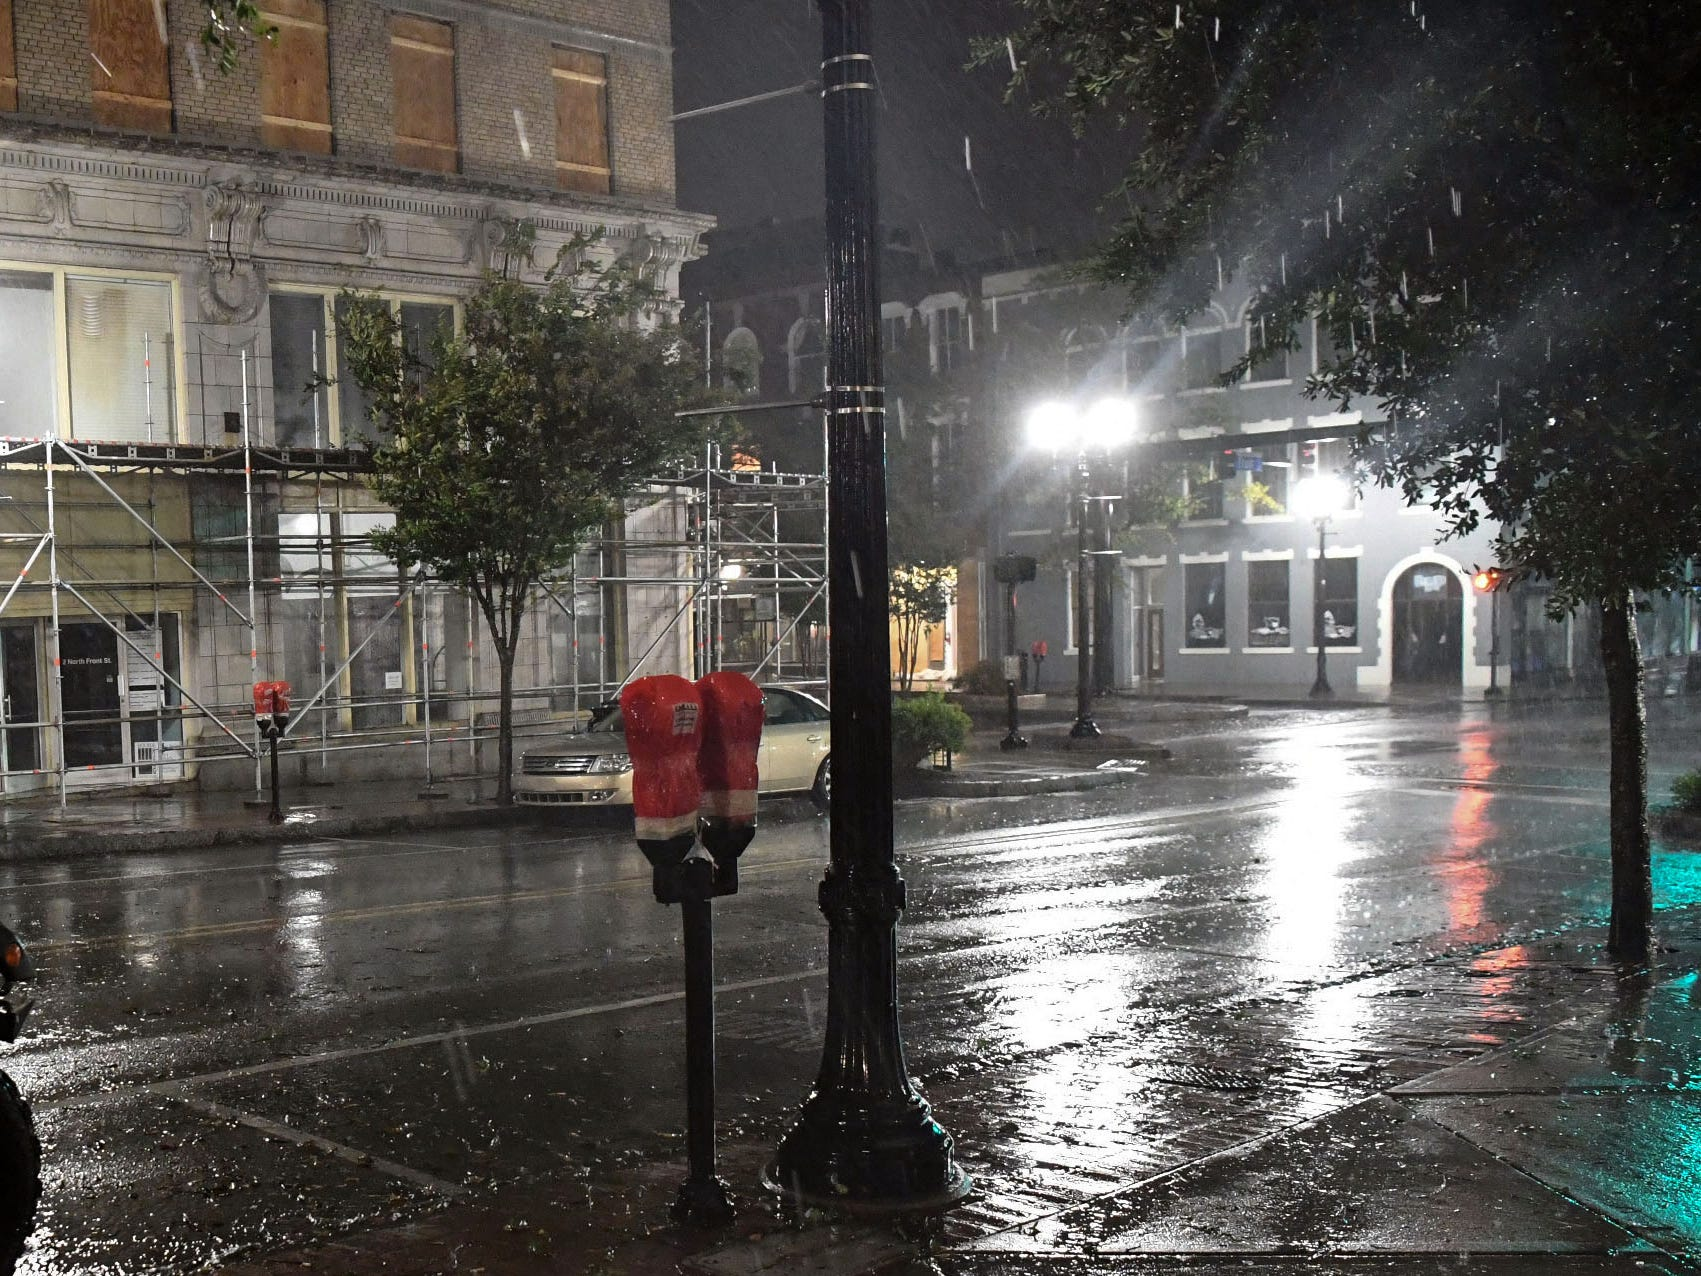 Sept 14, 2018; Wilmington, NC, USA; Windows and a parking meter is are covered while wind and rain gust early in the morning in downtown Wilmington, North Carolina. Mandatory credit: Ken Ruinard/Greenville News via USA Today Network